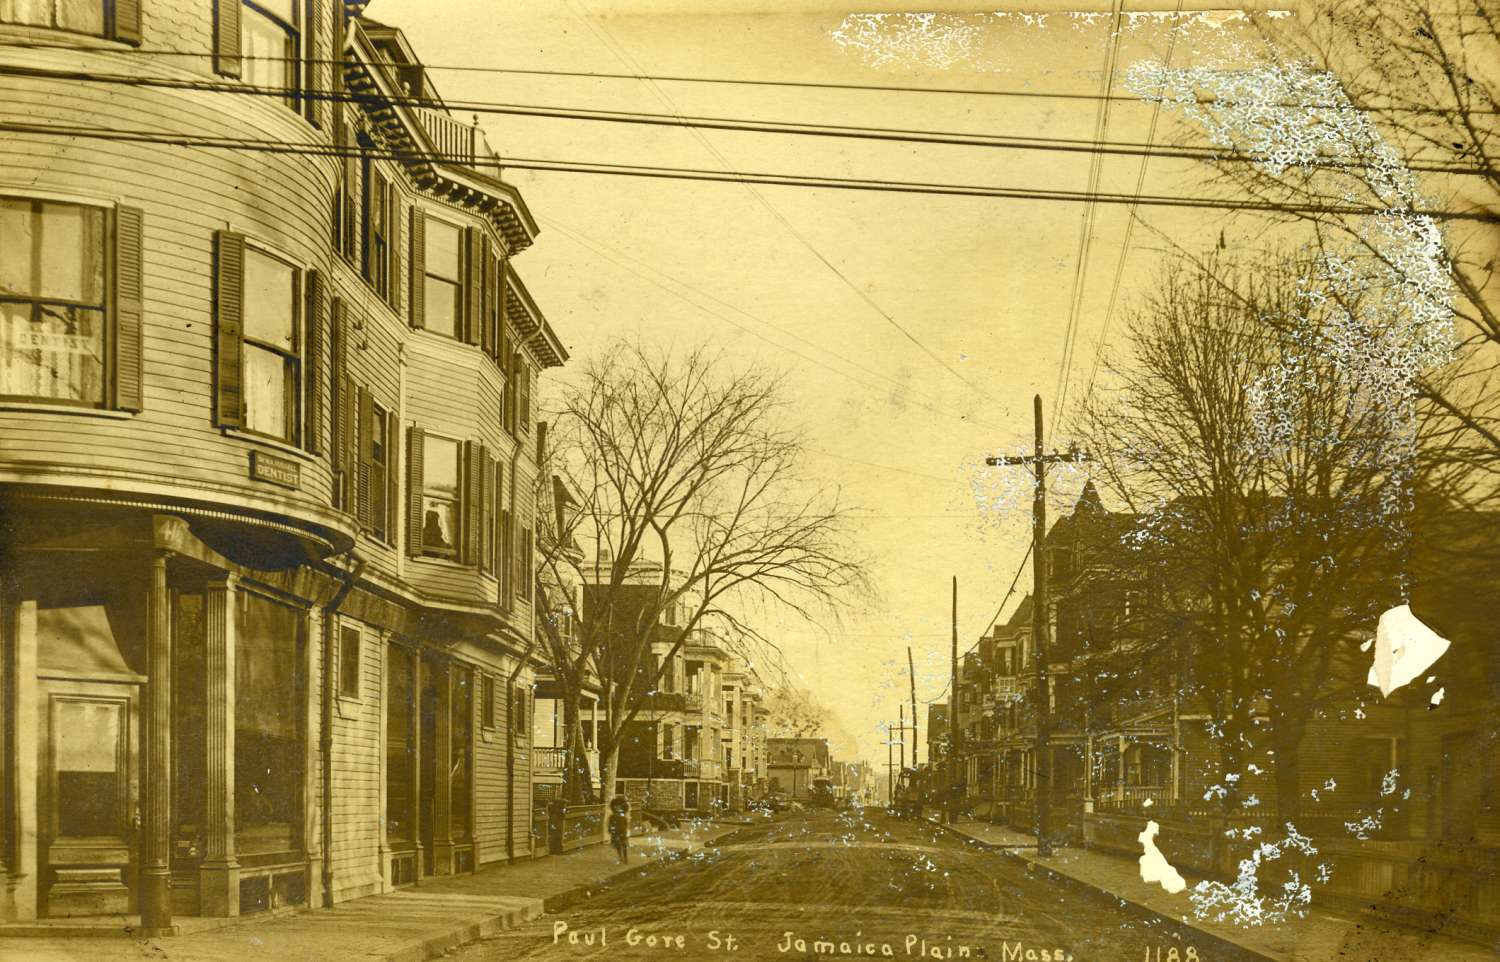 Paul Gore Street as seen from the corner of Centre Street. Courtesy of Greg French.